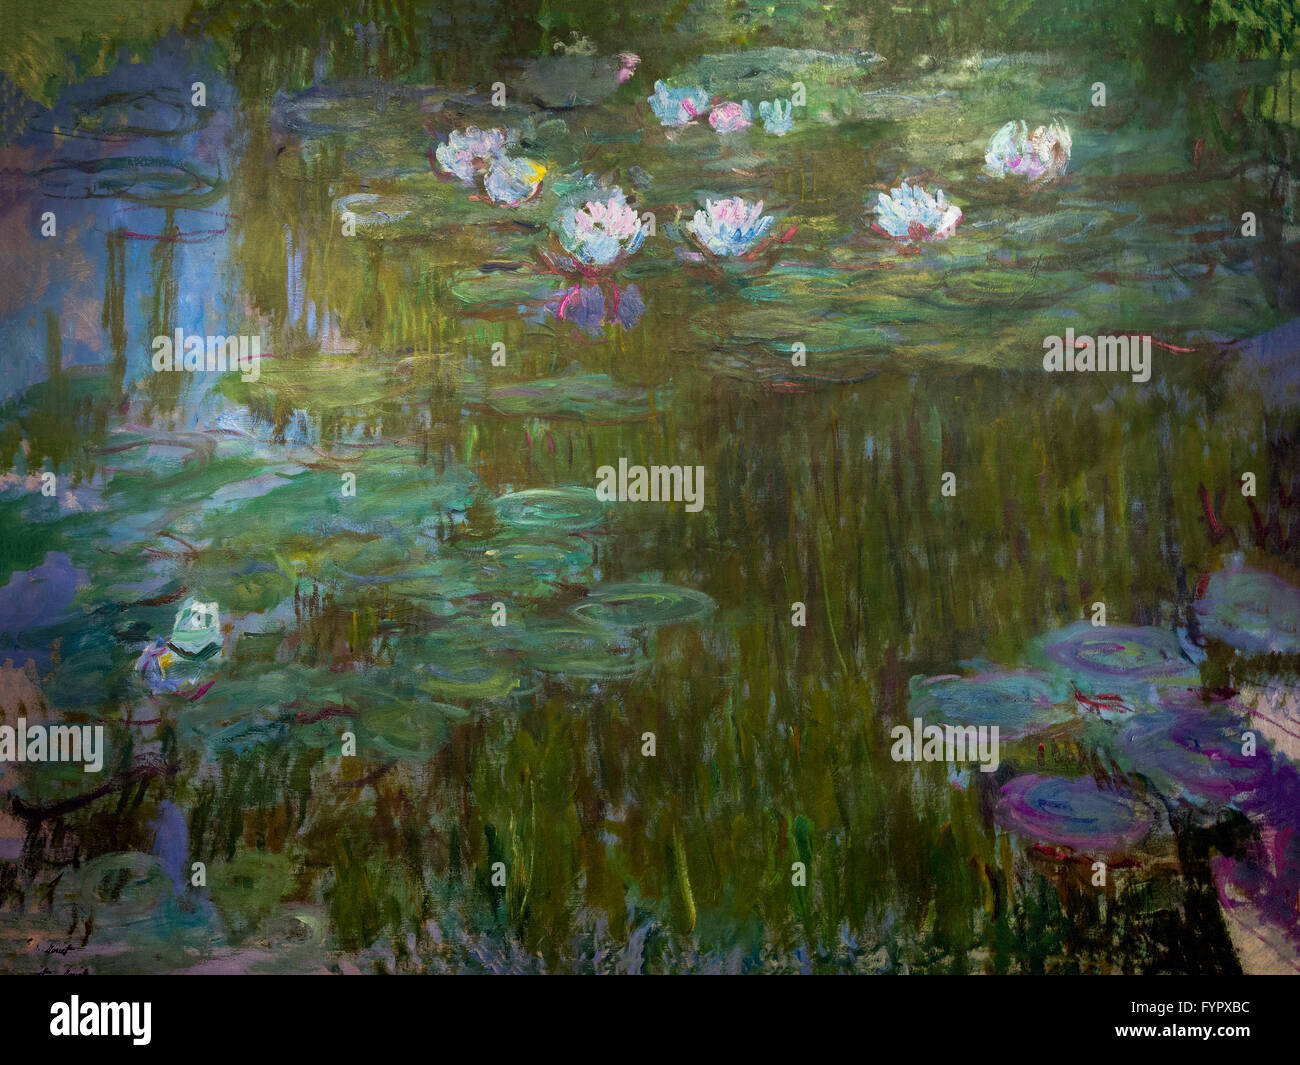 Water Lilies, Nympheas, by Claude Monet,  Musee Marmottan, Paris, France, Europe - Stock Image